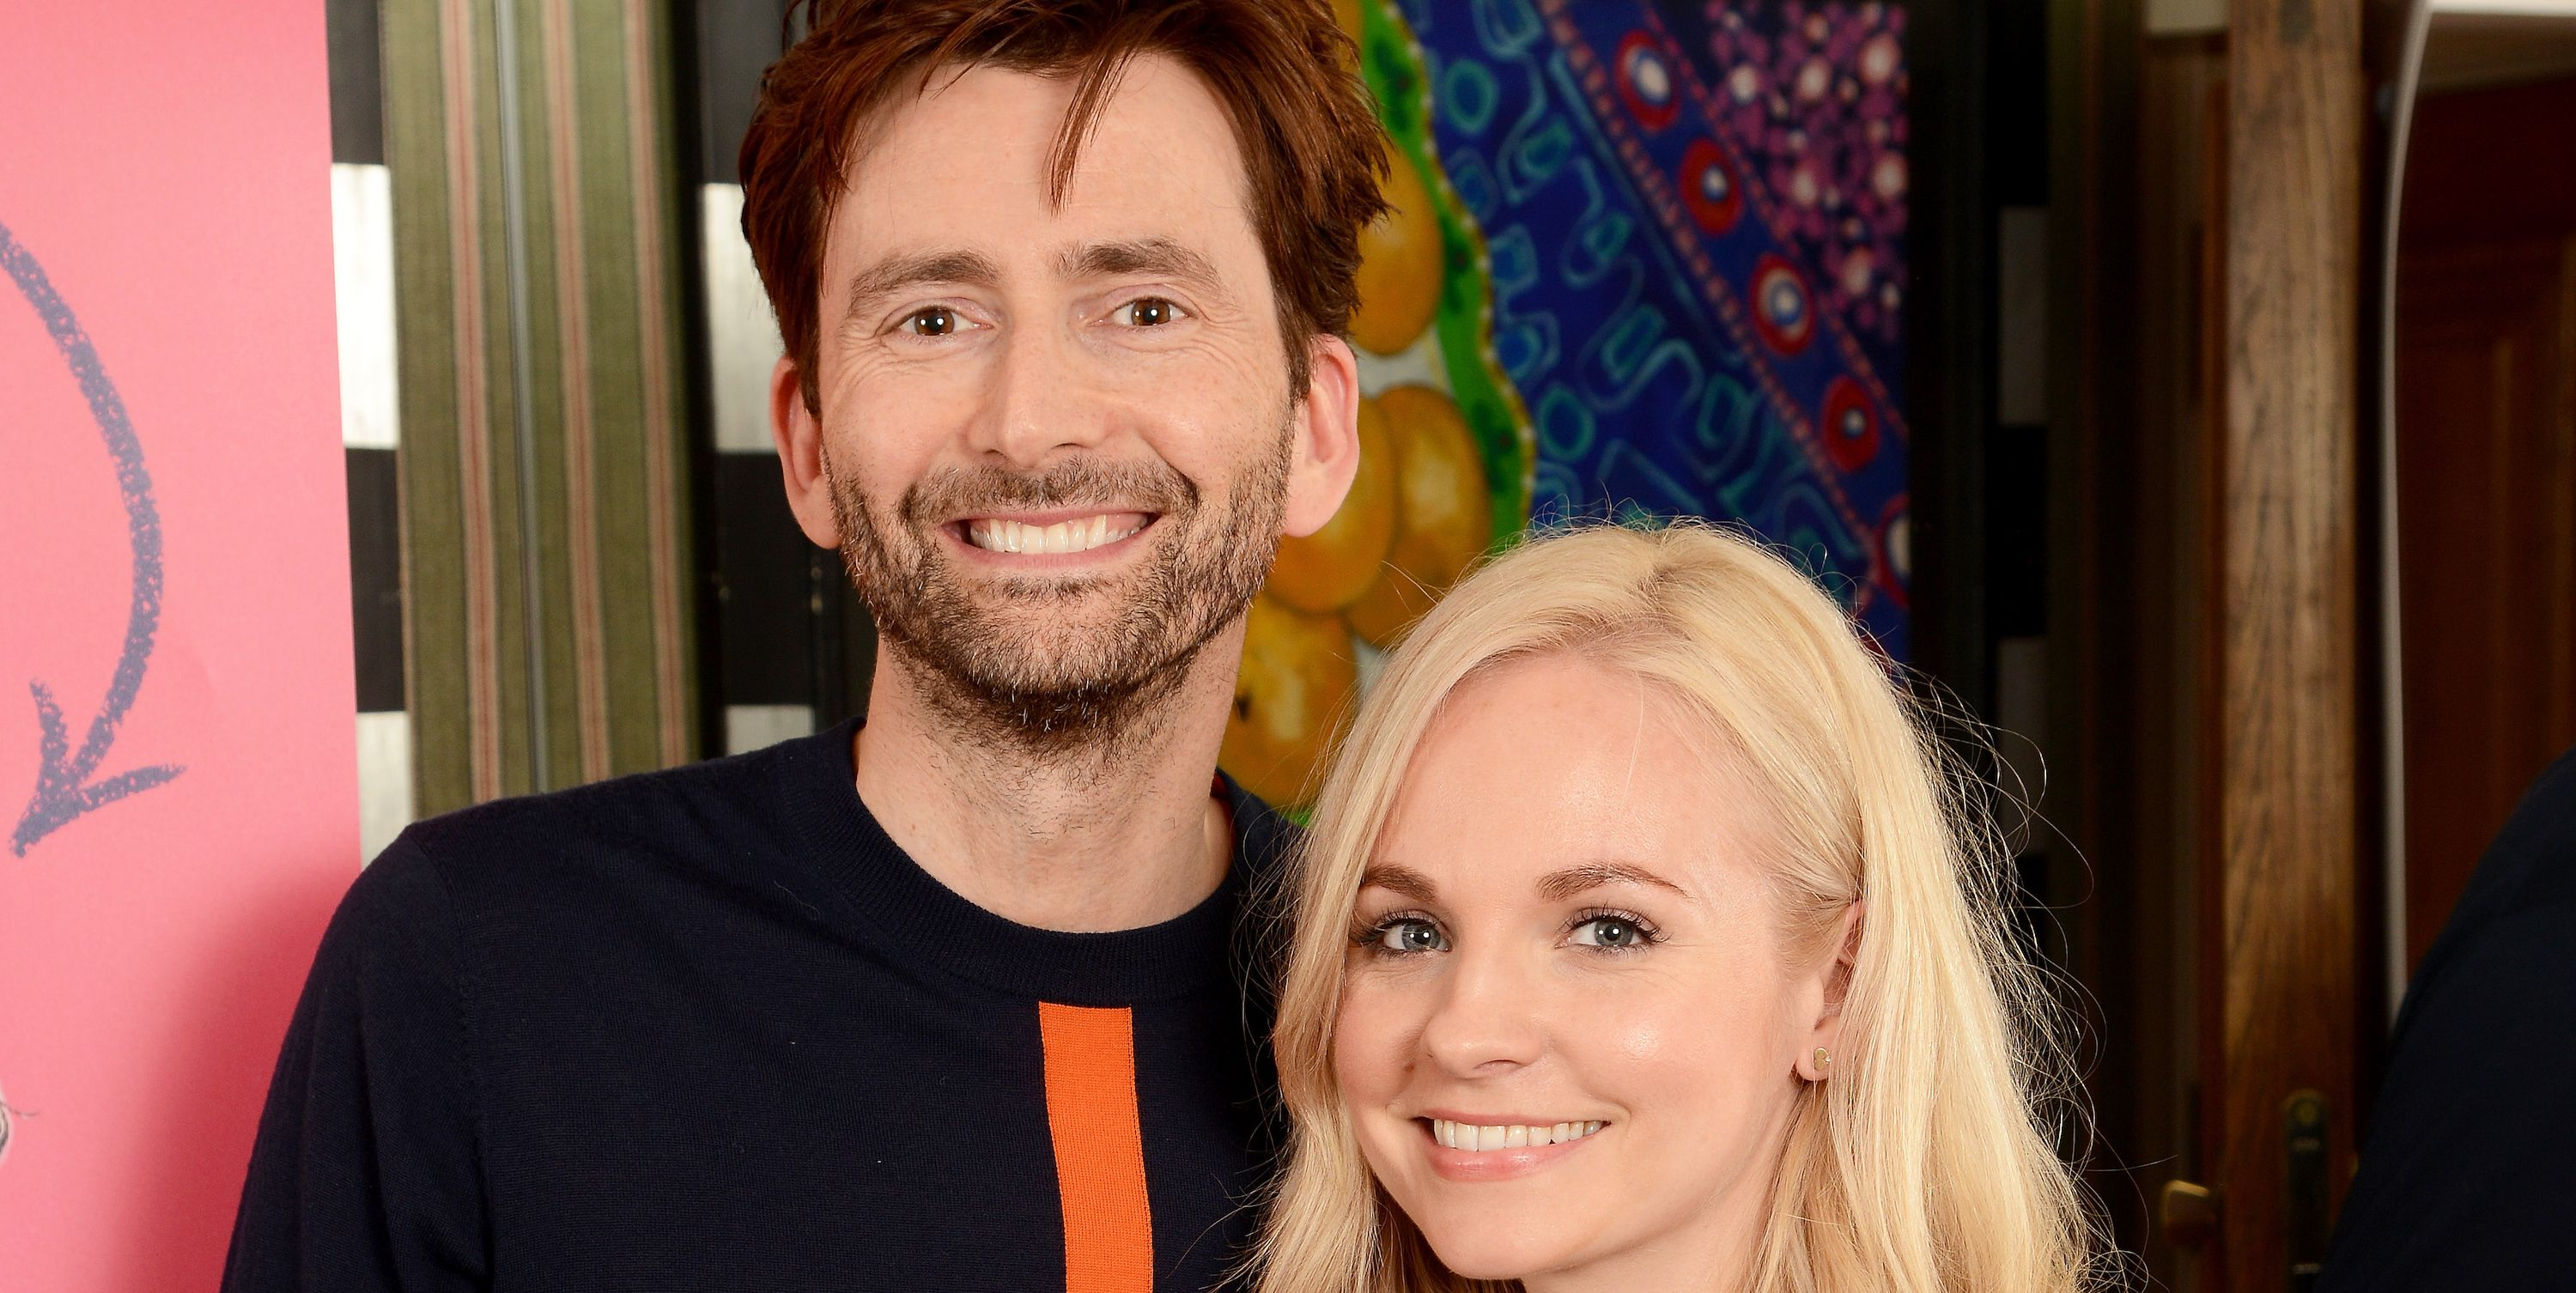 David Tennant and Georgia Tennant at You Me, and Him screening in 2018.